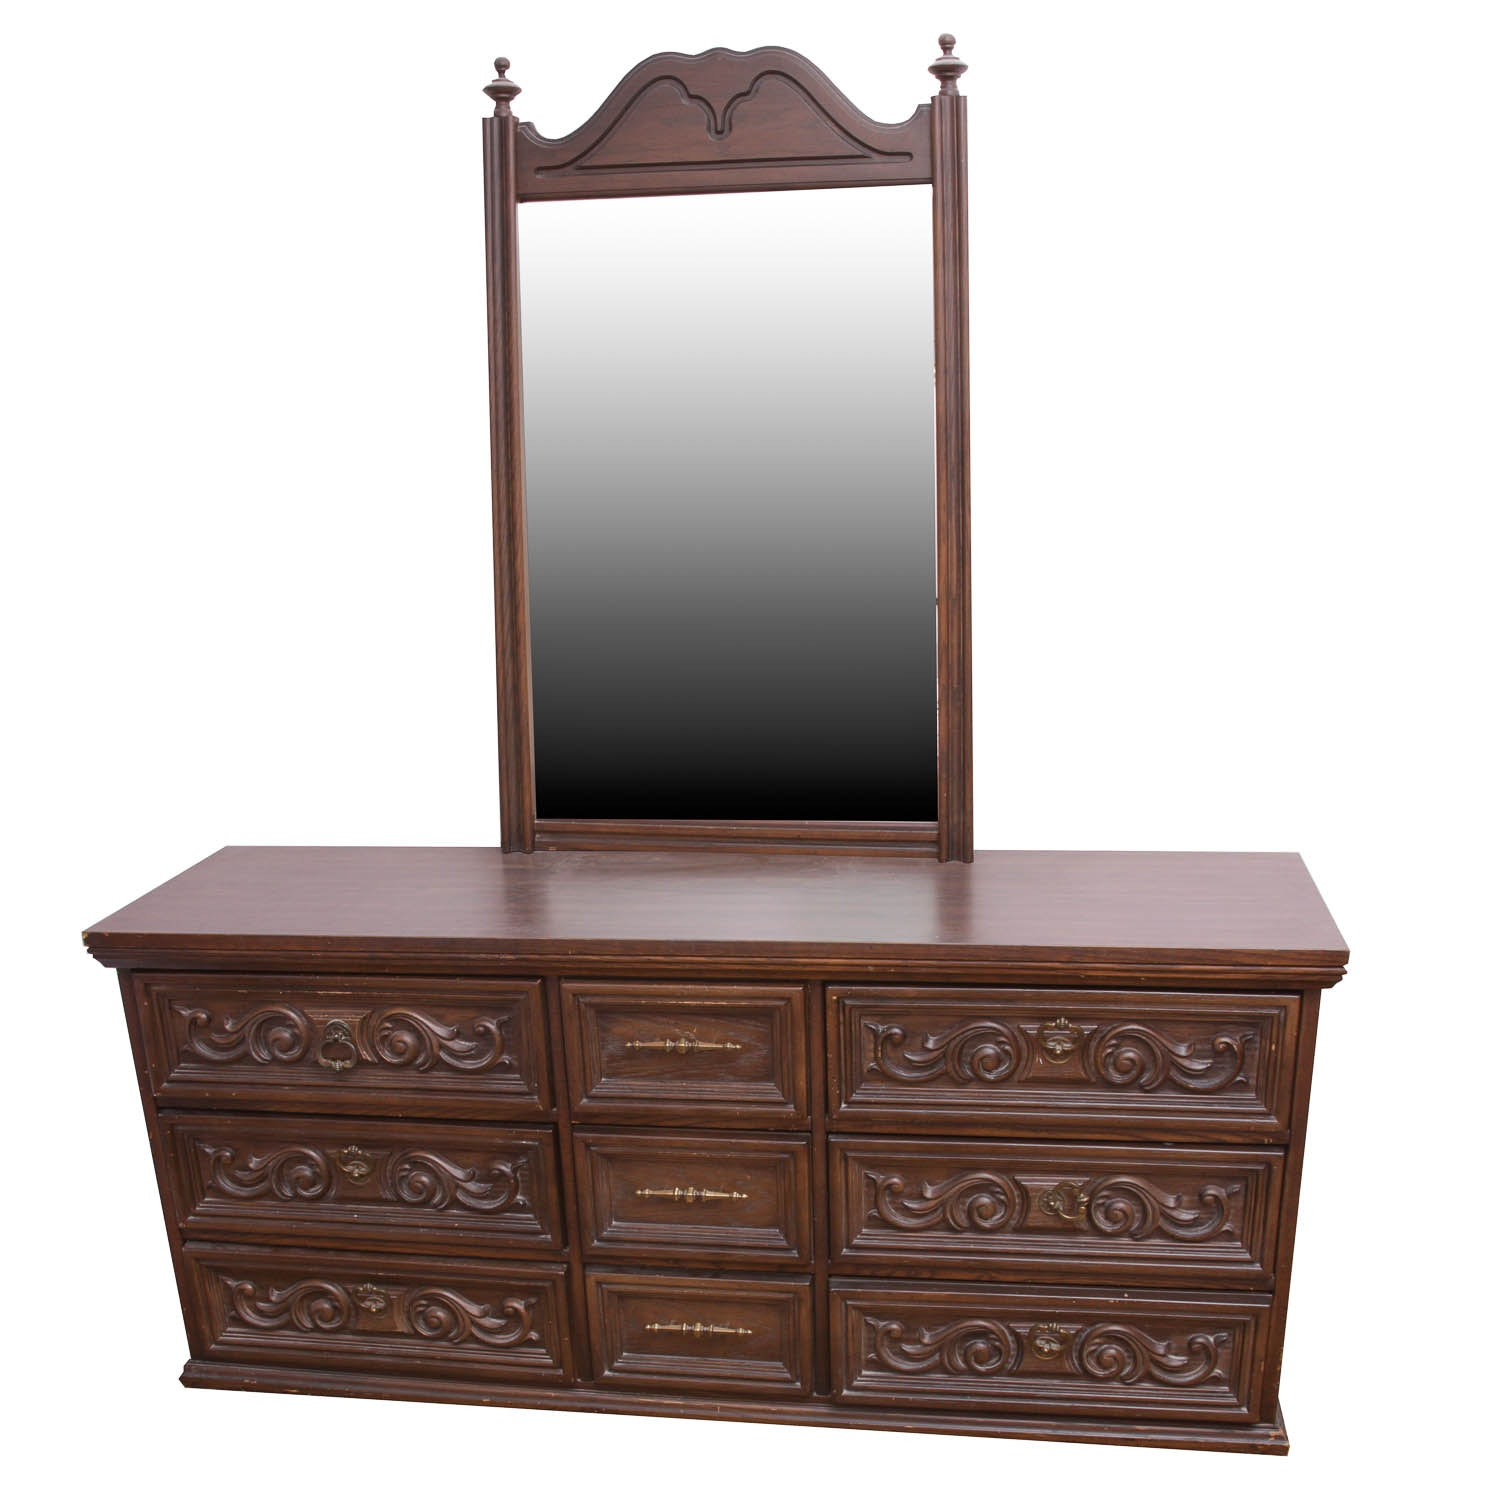 Delicieux Bassett Furniture Industries Dresser With Mirror ...